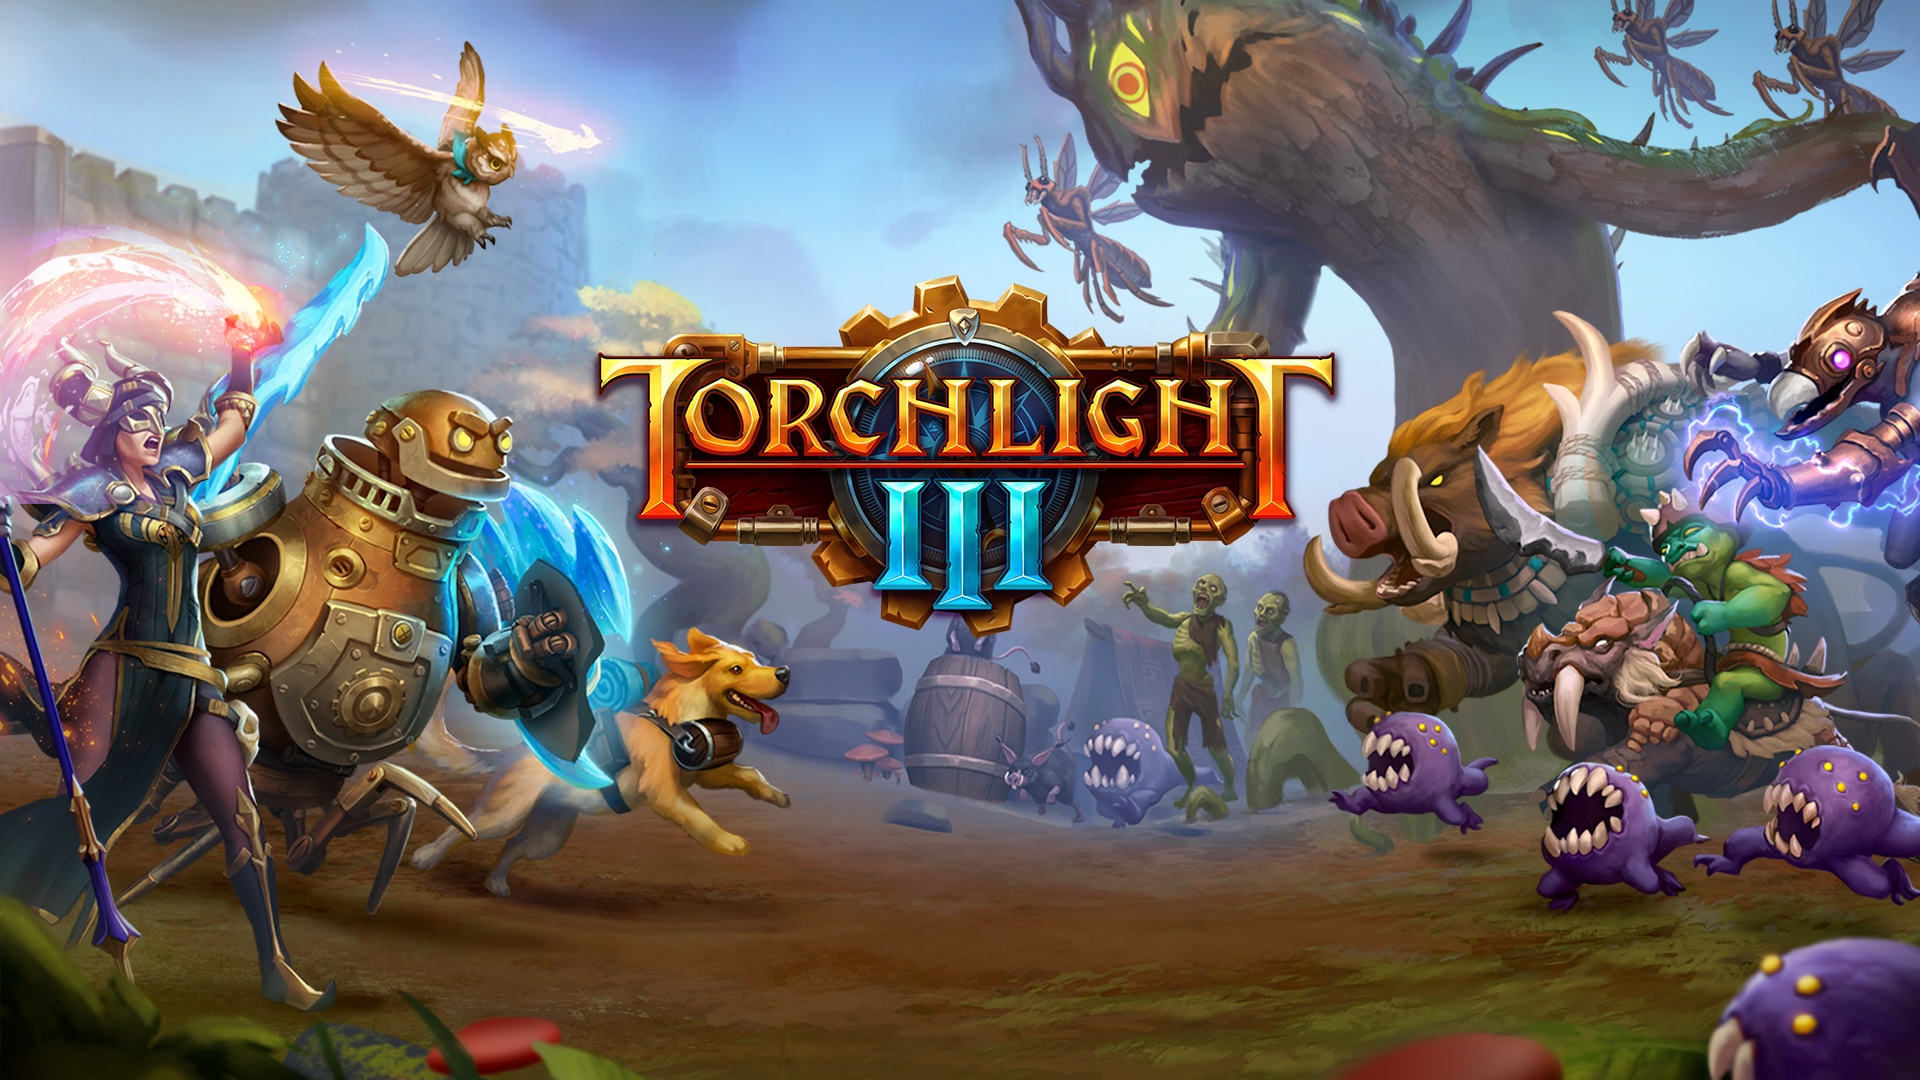 Key art for Torchlight 3, including the game's logo and fantasy creatures and humans converging in battle